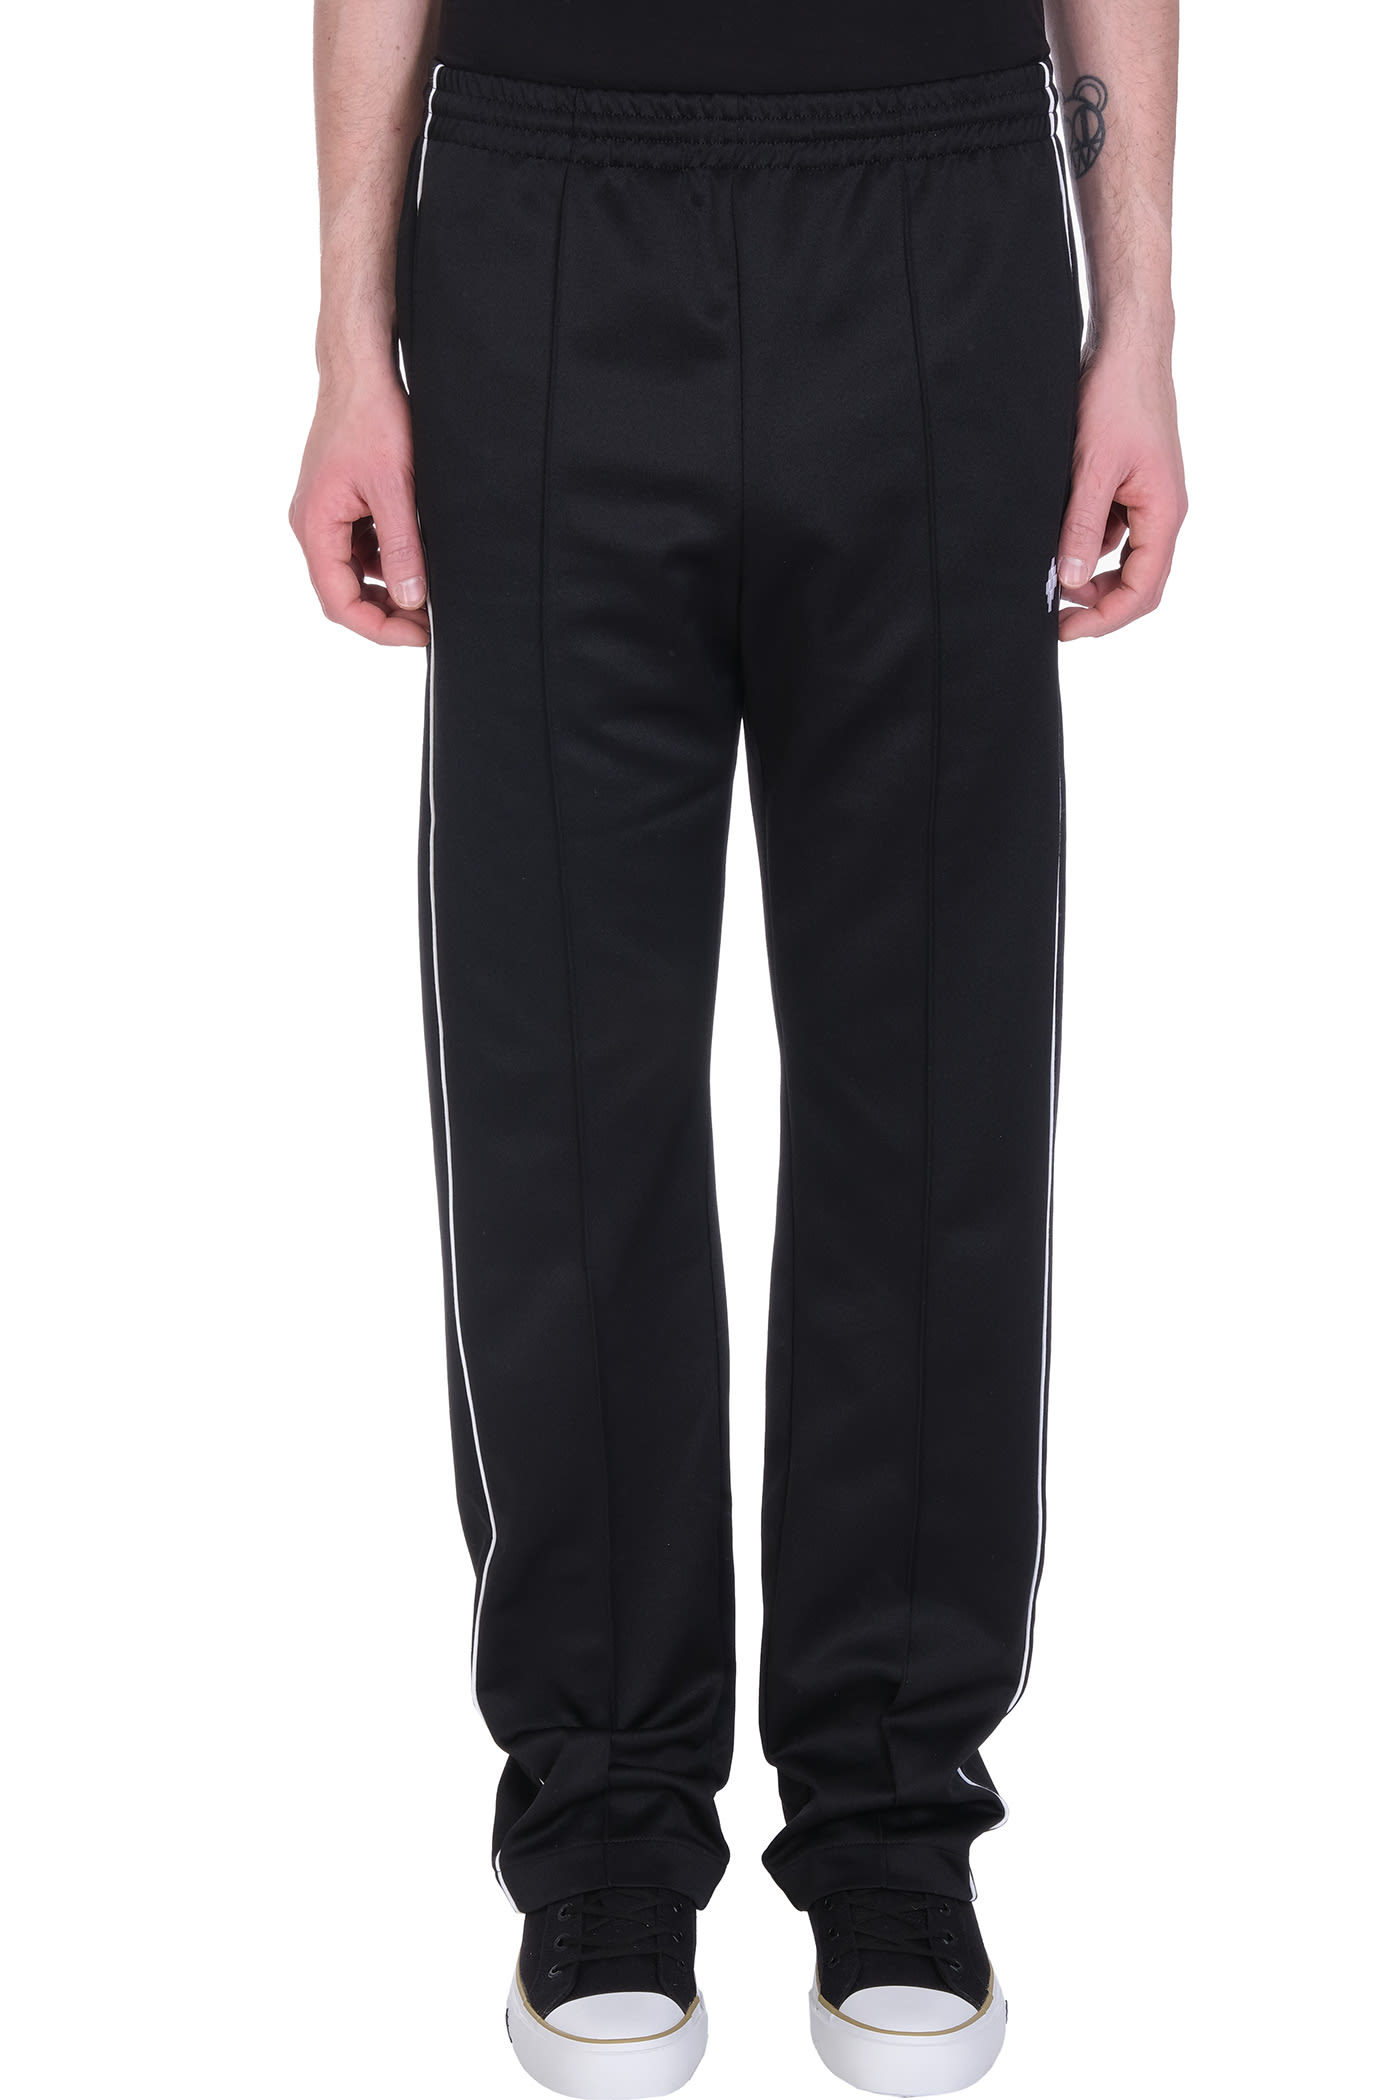 Pants In Black Polyester